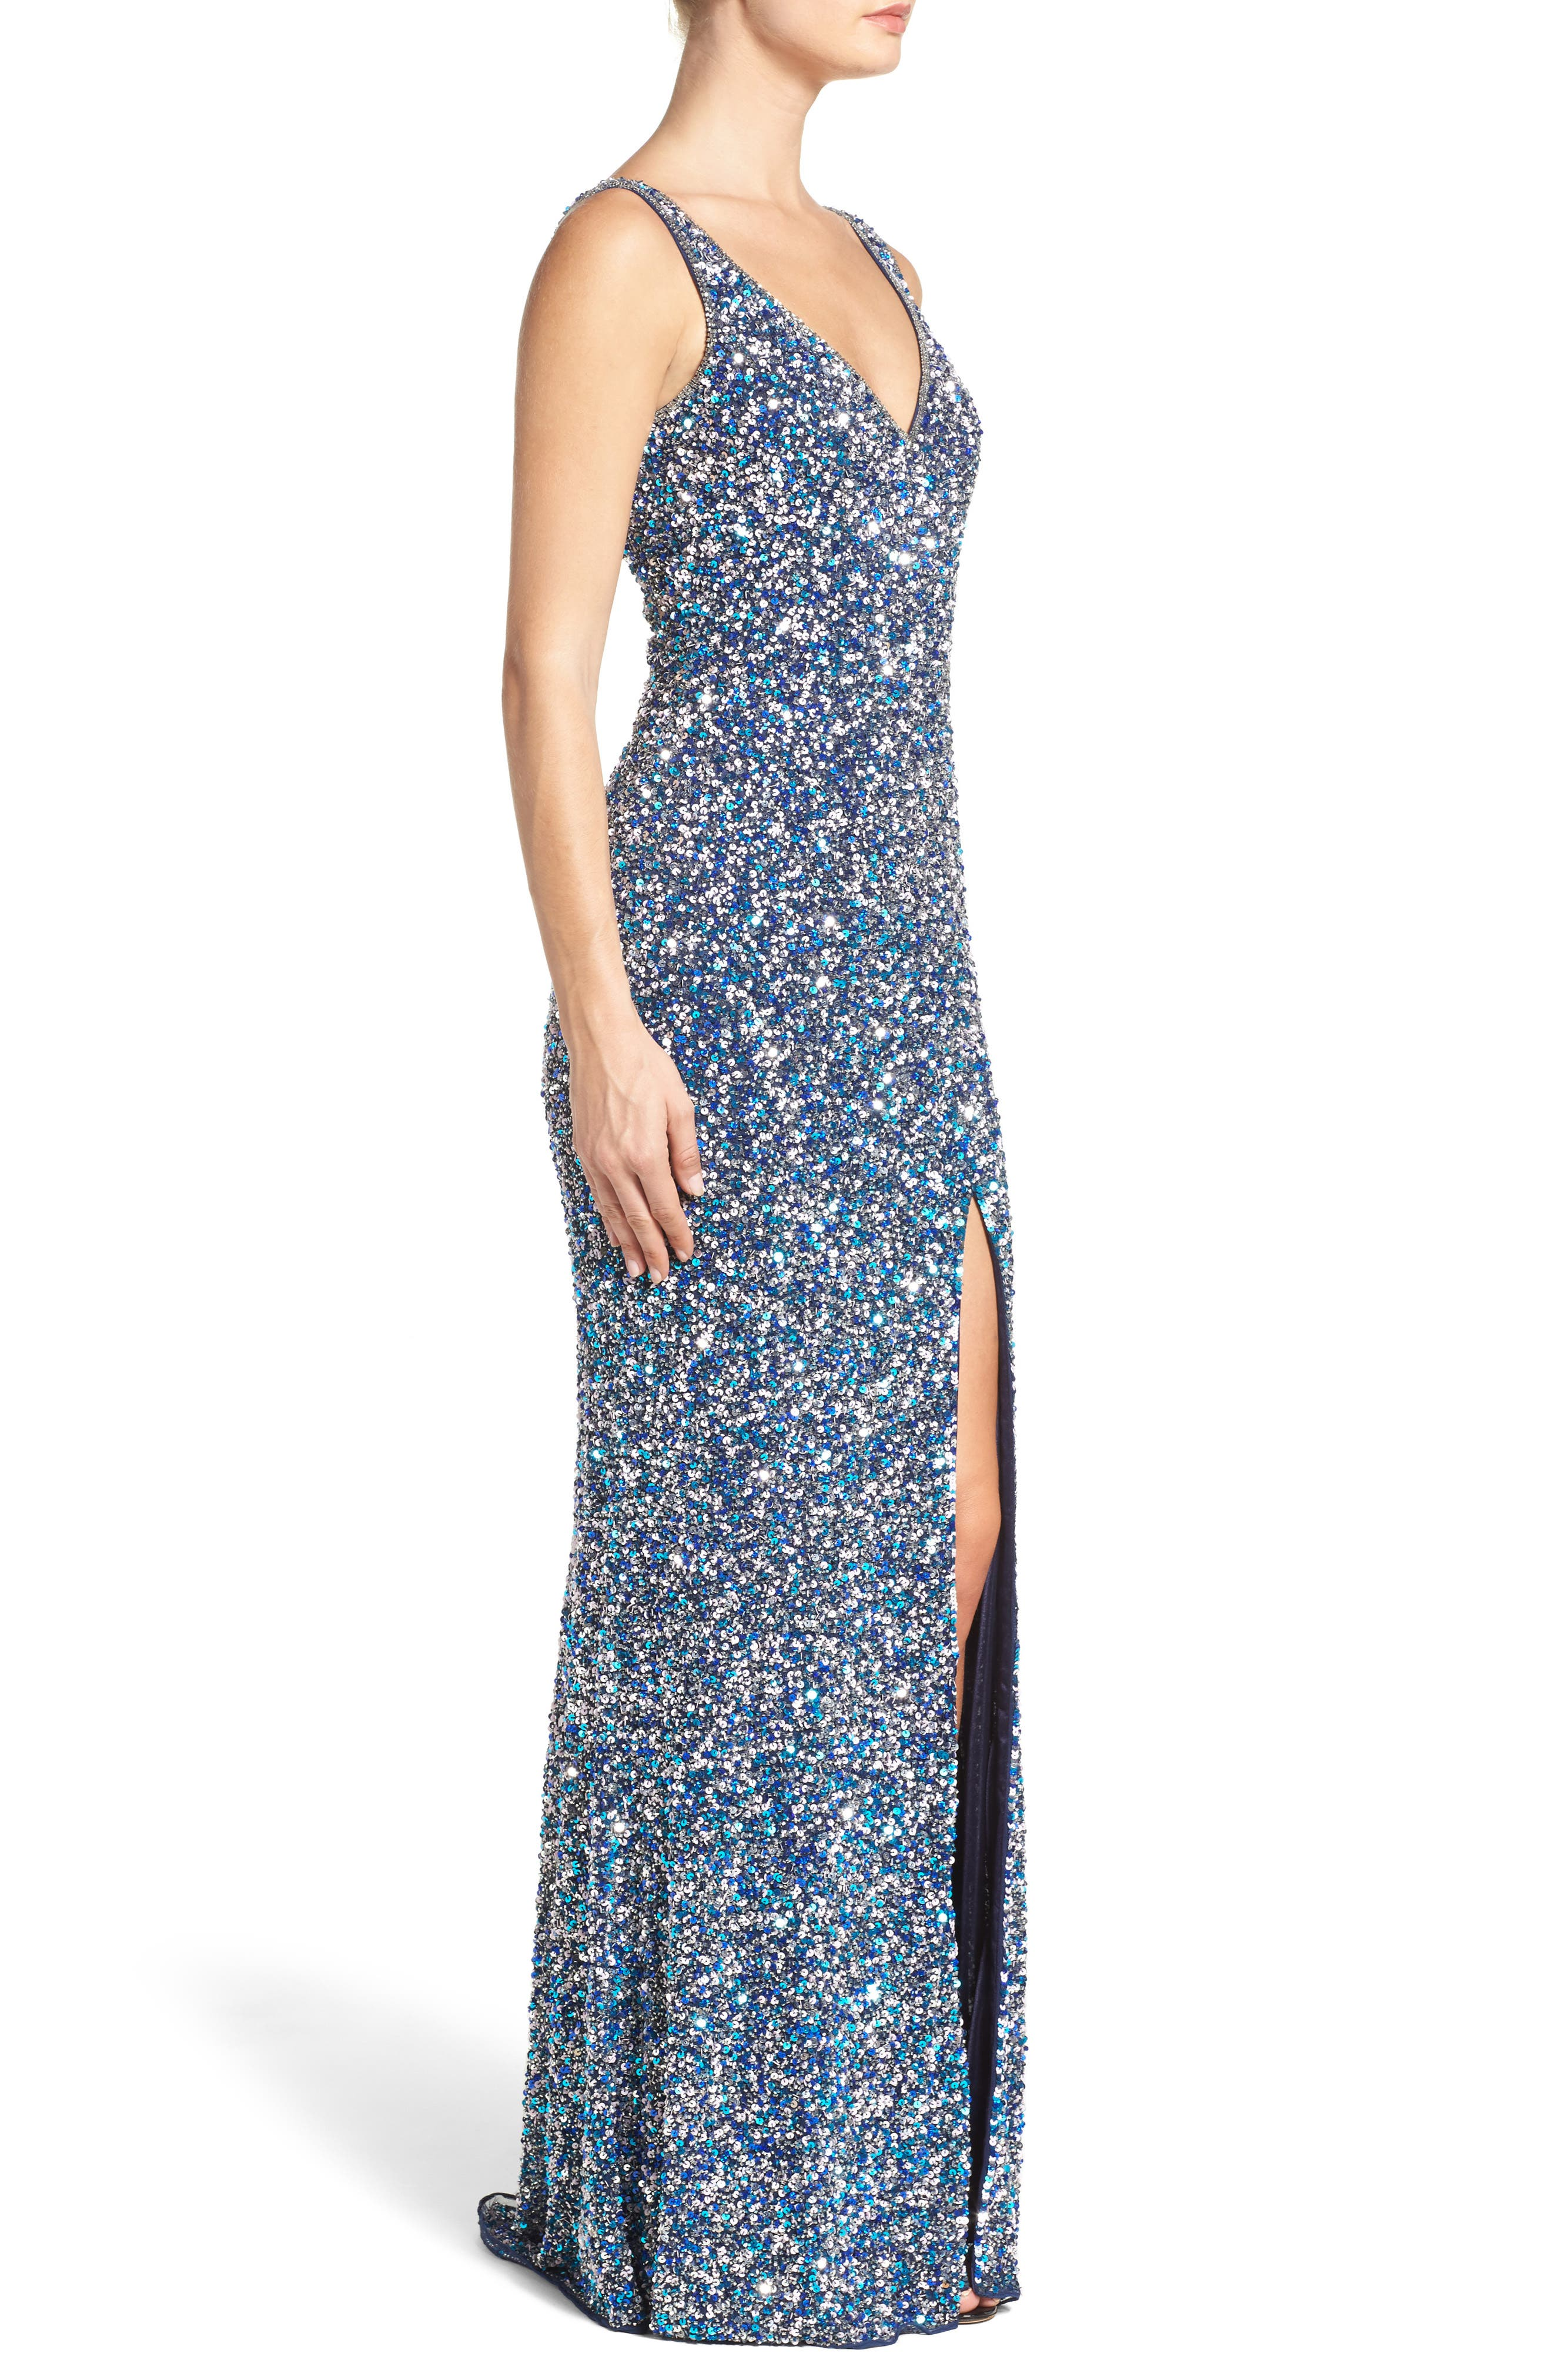 MAC DUGGAL, Sequin Slit Gown, Alternate thumbnail 3, color, NAVY MULTI